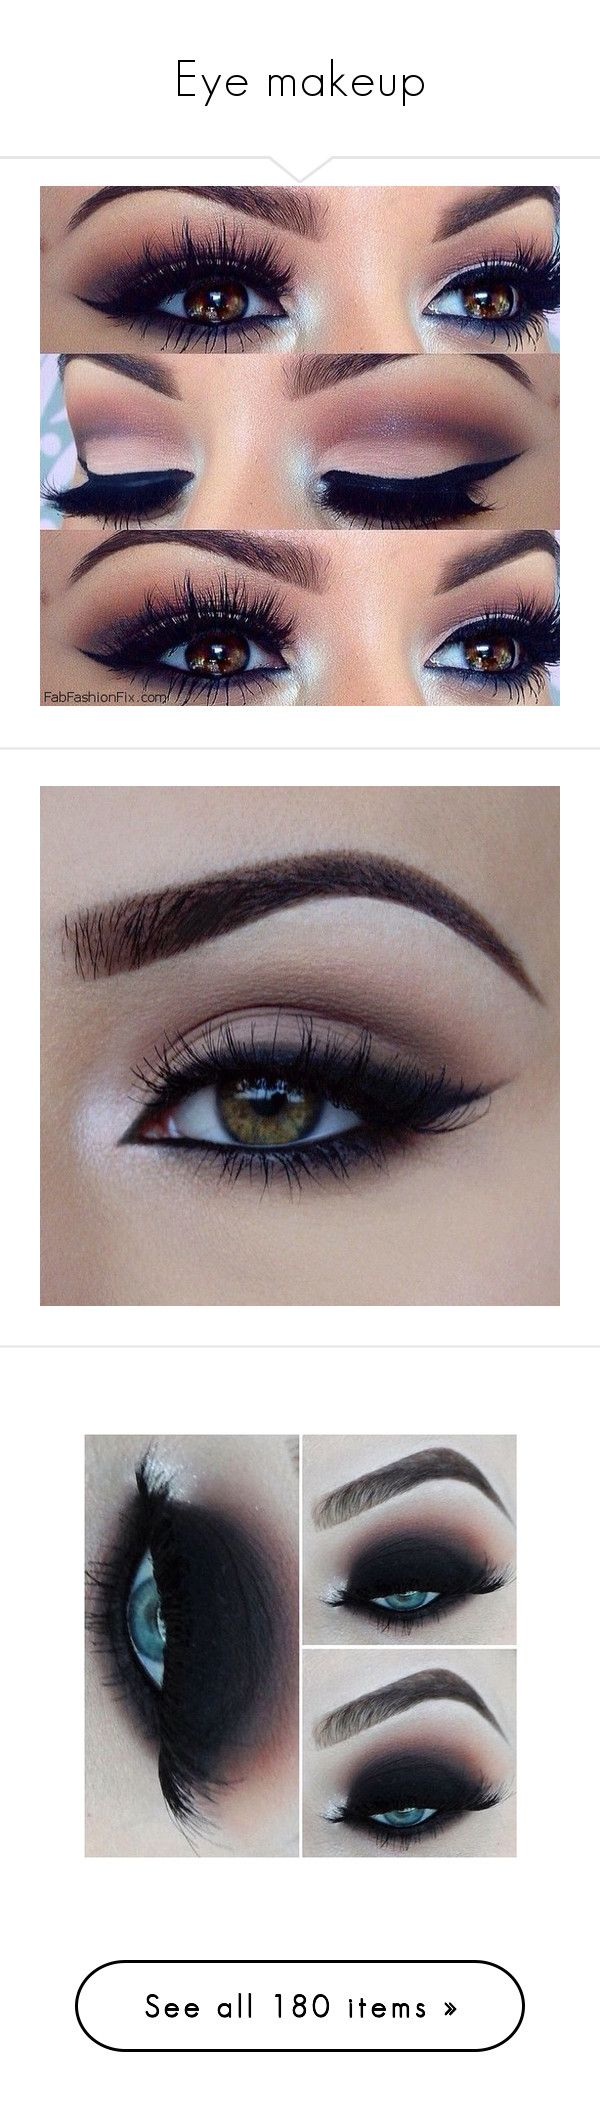 """""""Eye makeup"""" by queen-beanie ❤ liked on Polyvore featuring beauty products, makeup, eye makeup, eyes, beauty, make, lip makeup, eyebrow makeup, brow makeup and eye brow makeup"""